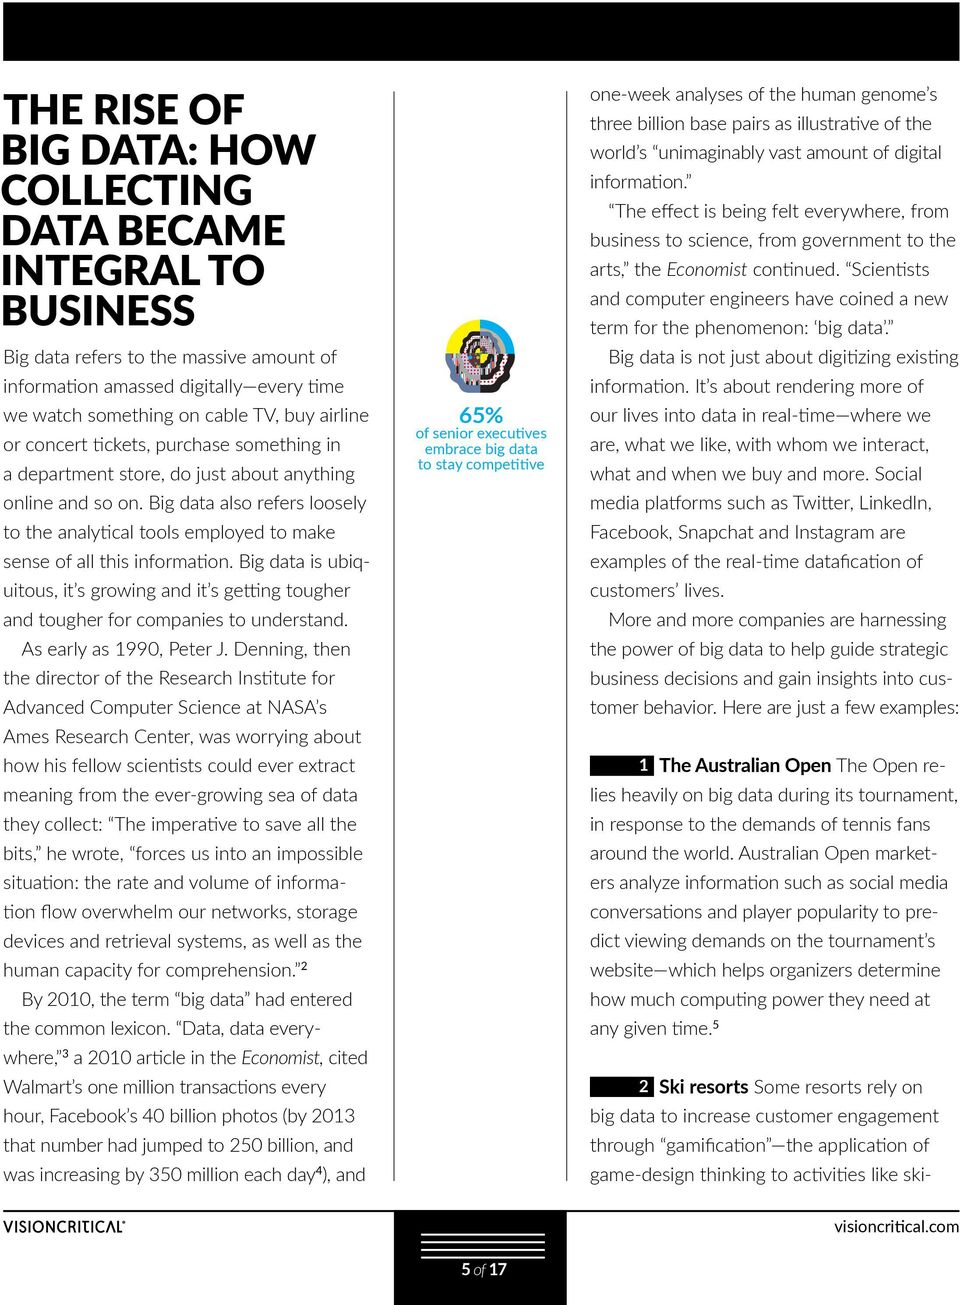 Big data is ubiquitous, it s growing and it s getting tougher and tougher for companies to understand. As early as 1990, Peter J.